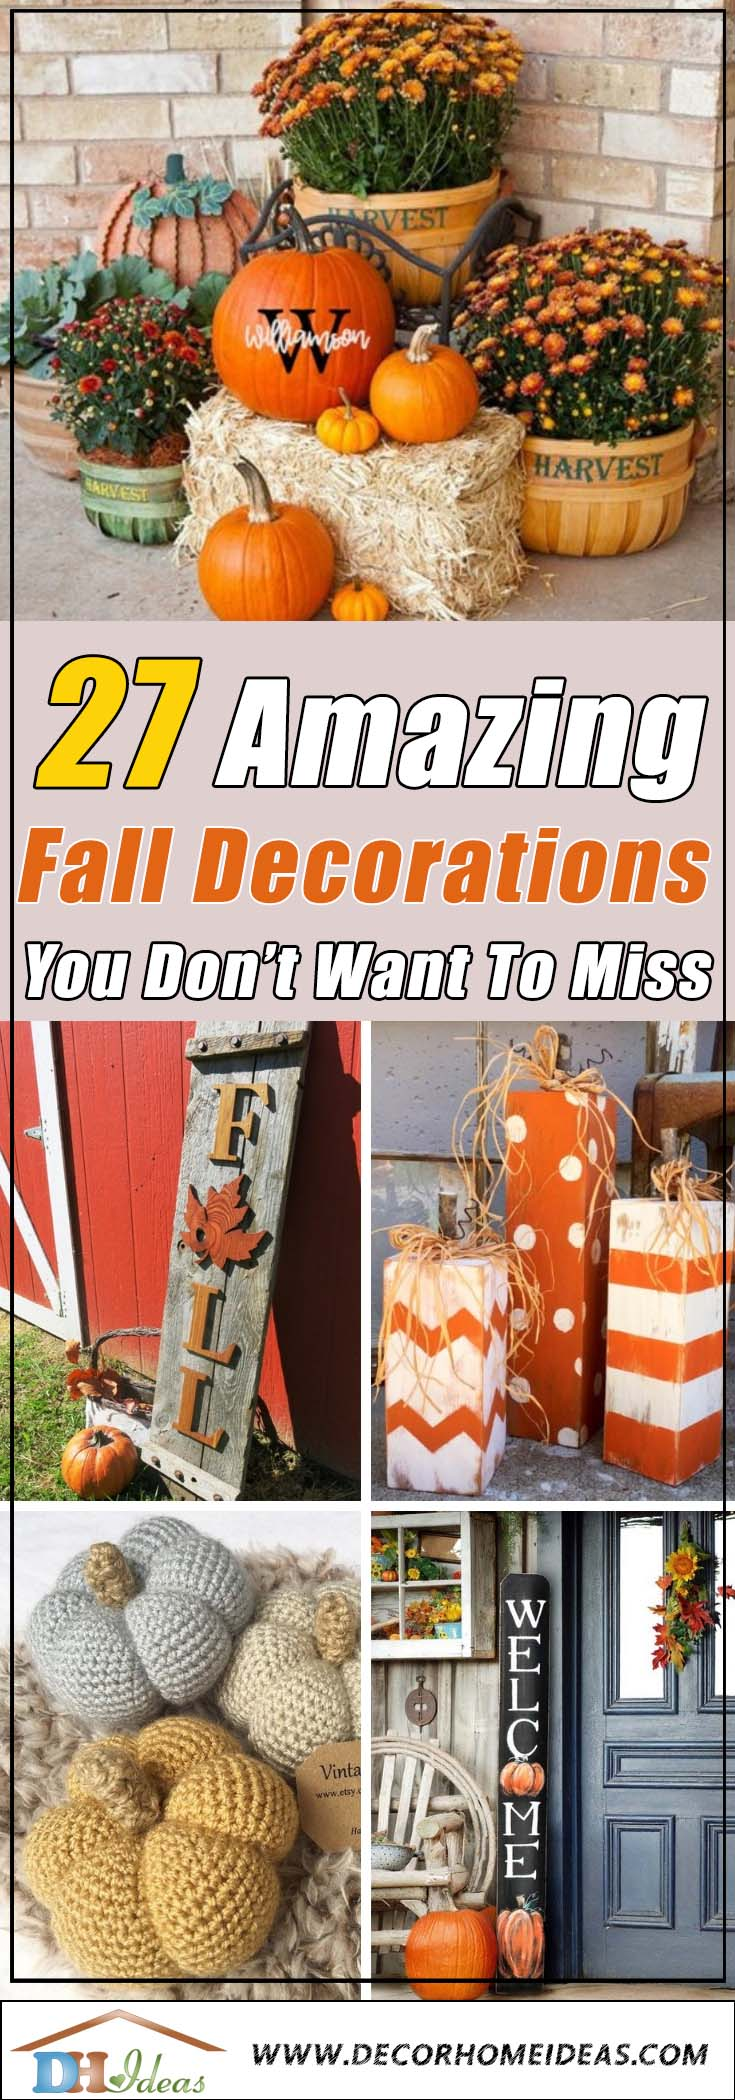 Best Fall Decorations #falldecor #etsy #fallideas #falldecoration #decorhomeideas